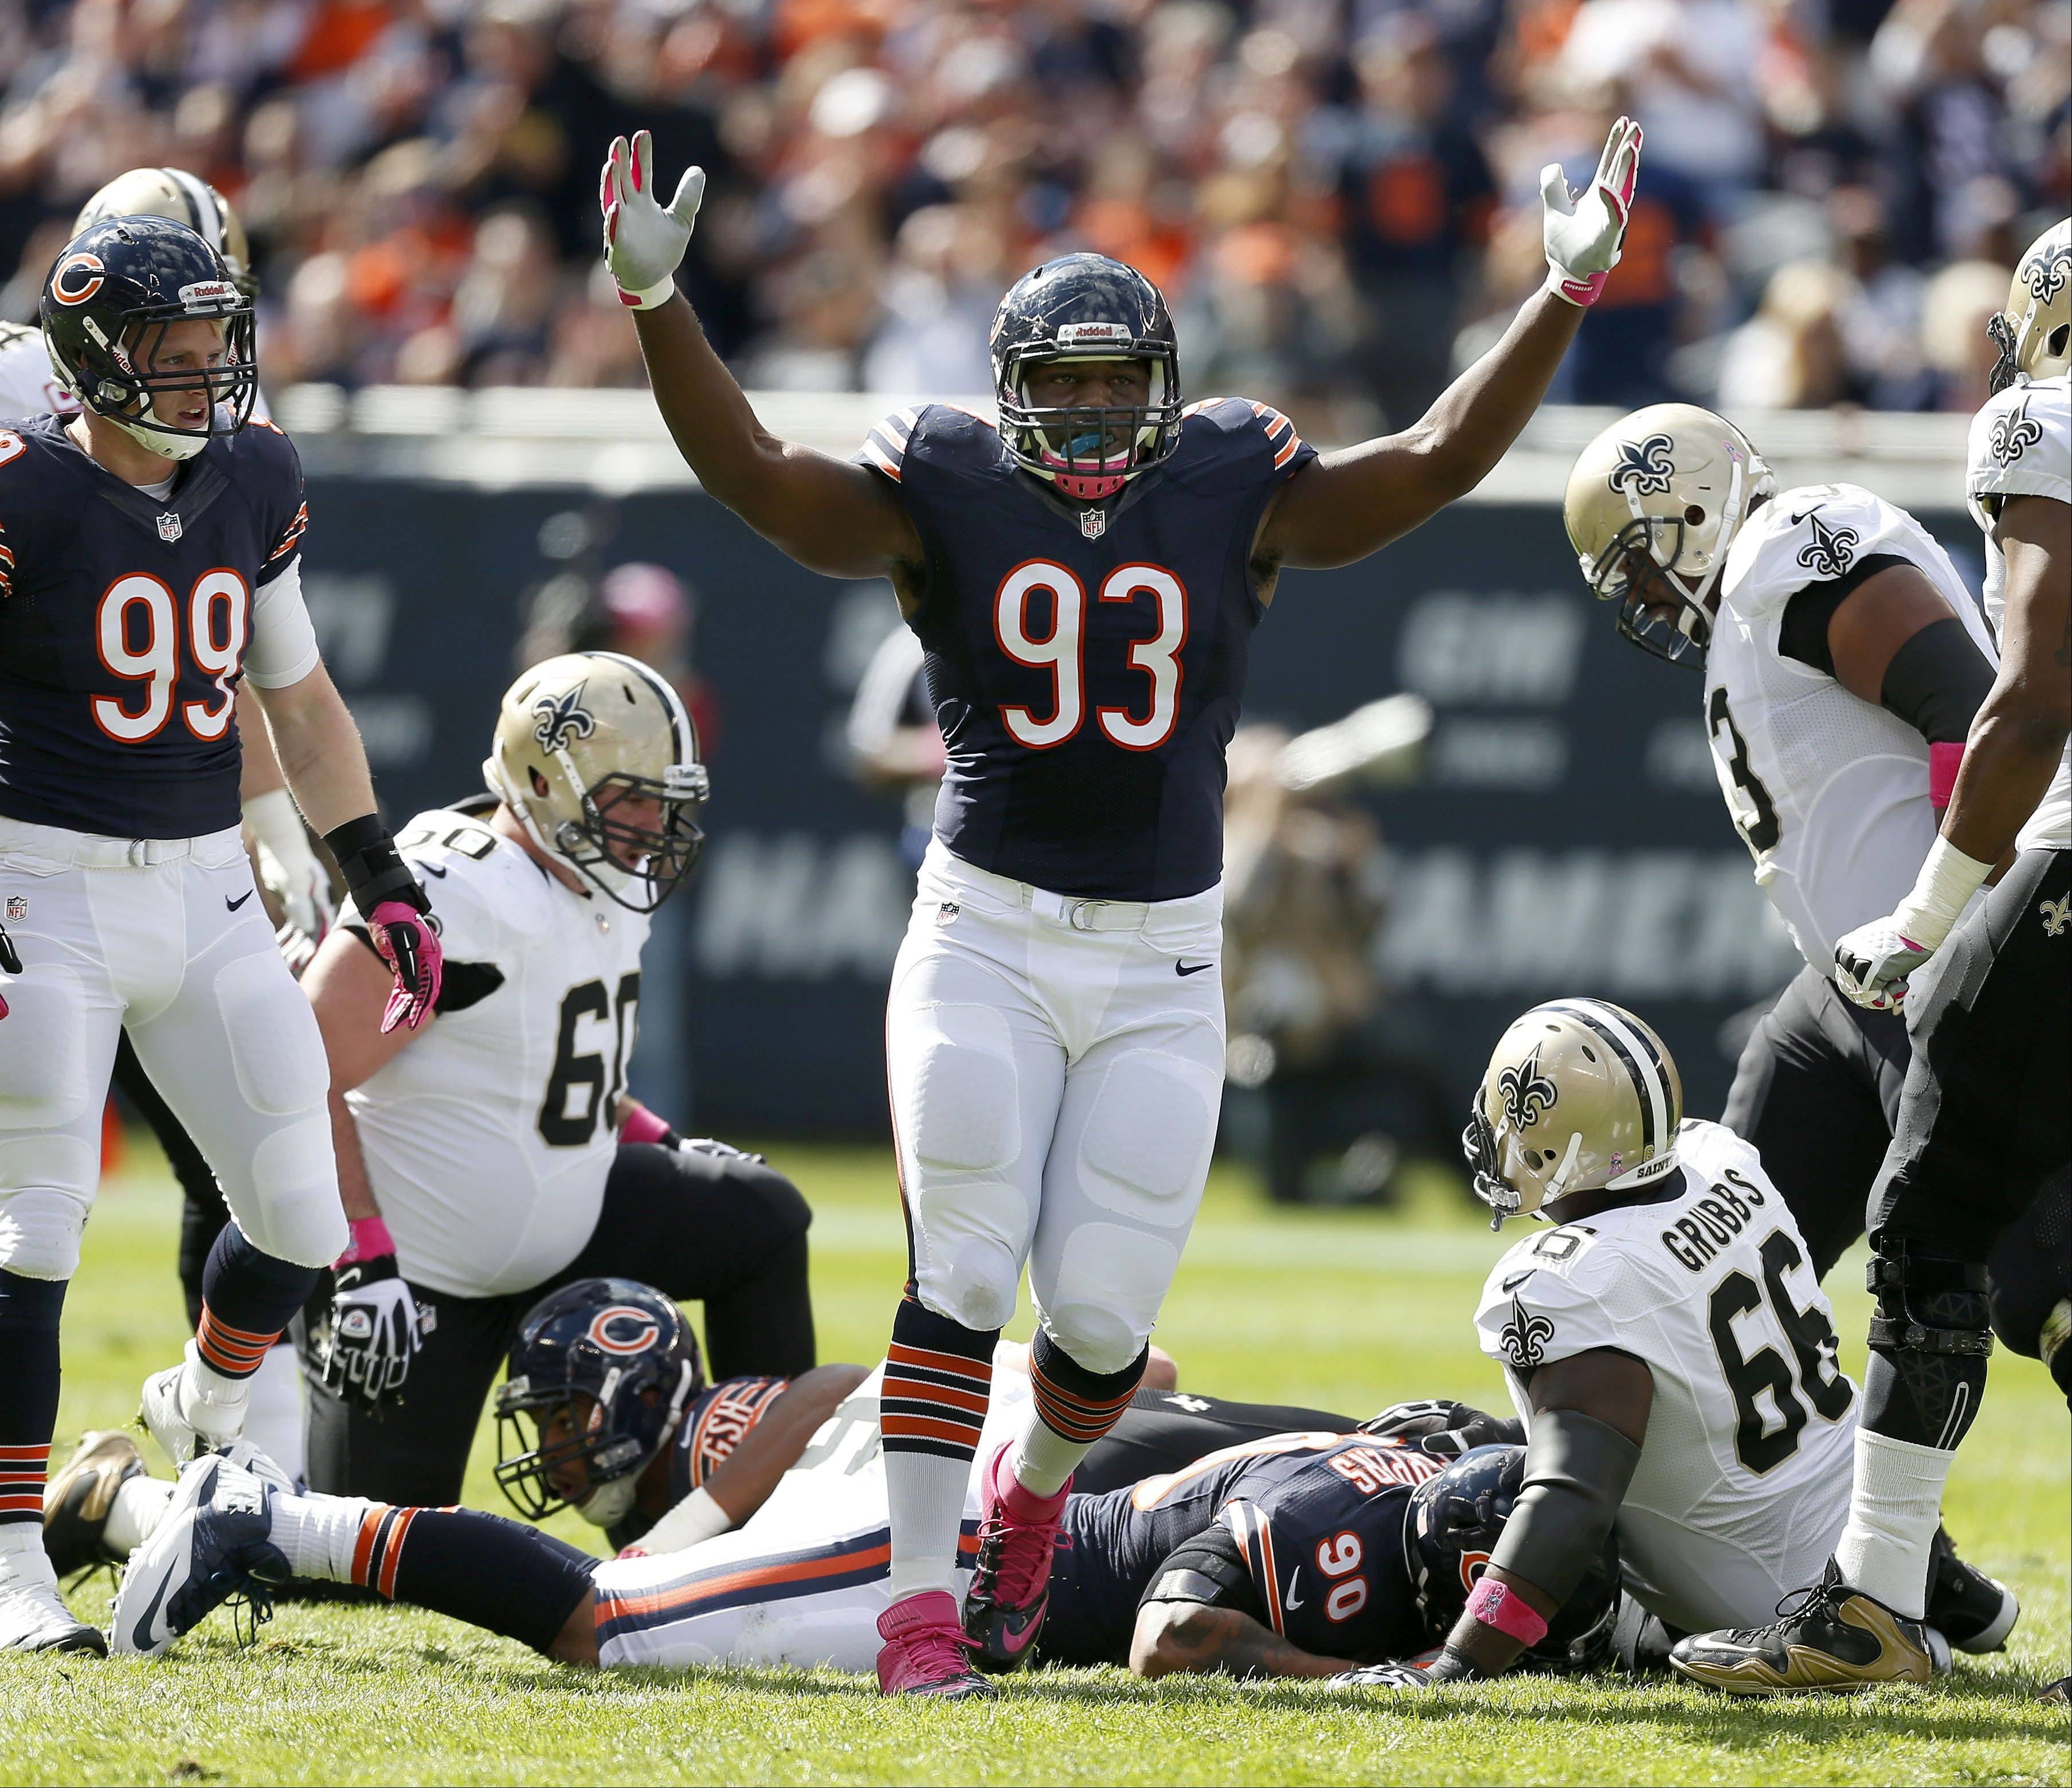 Chicago Bears defensive tackle Nate Collins celebrates after a sack.